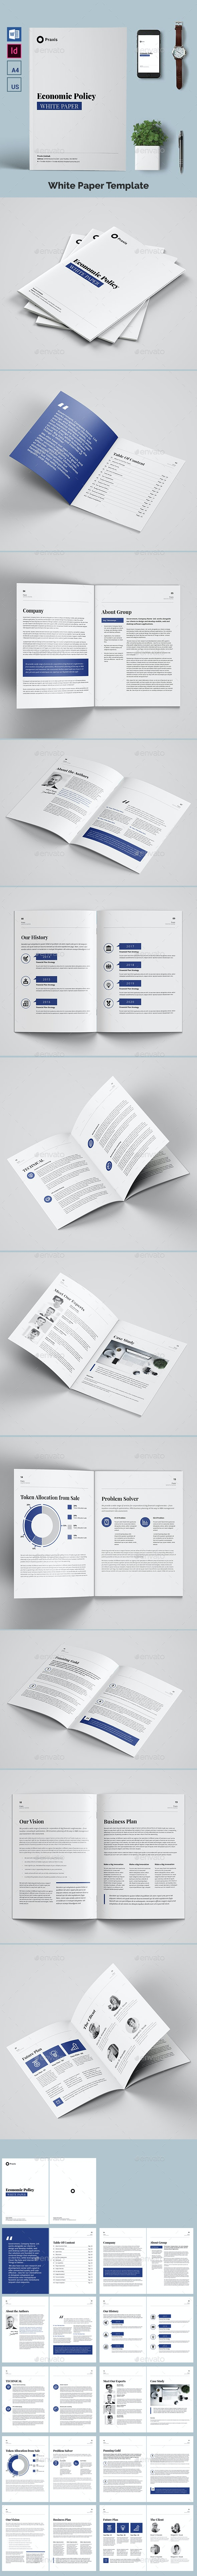 White Paper Template - Brochures Print Templates